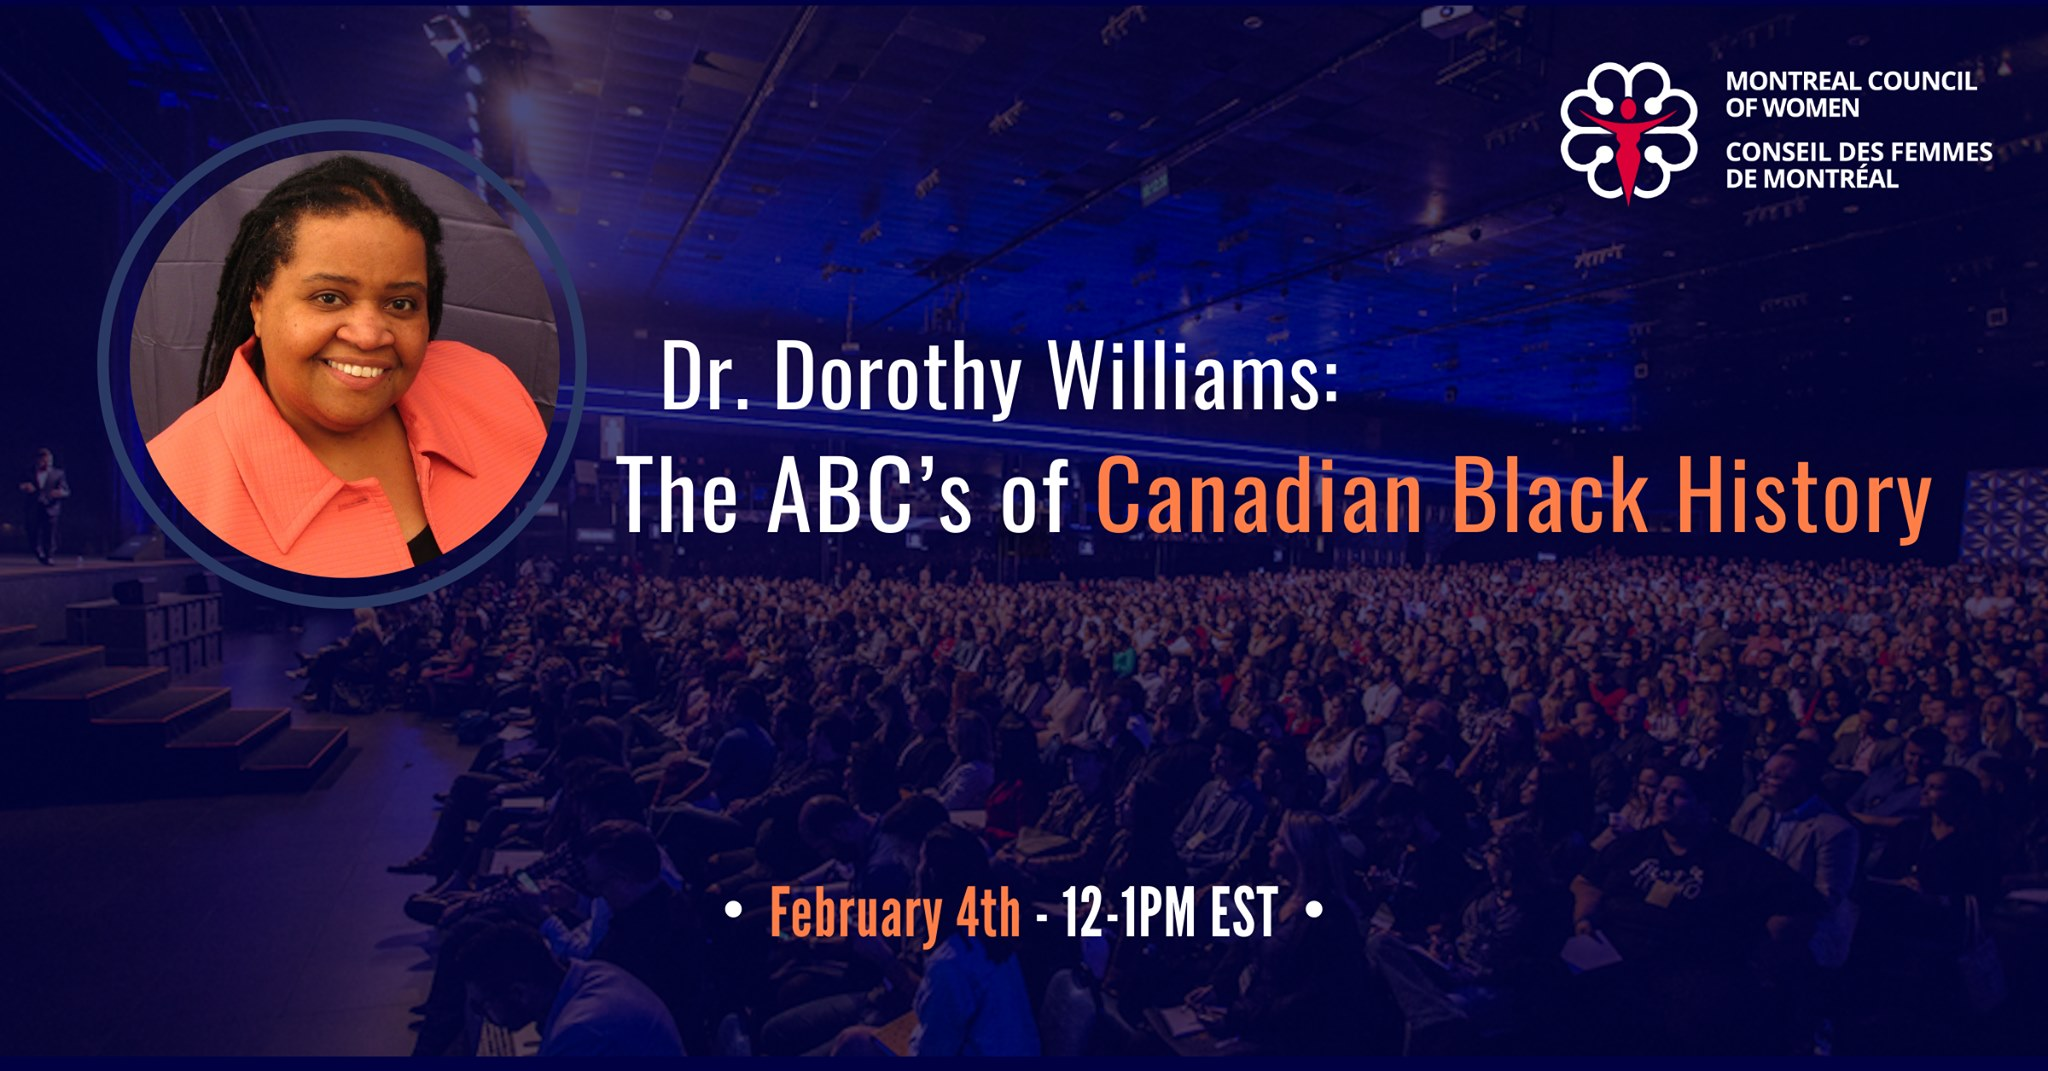 The ABC's of Canadian Black History